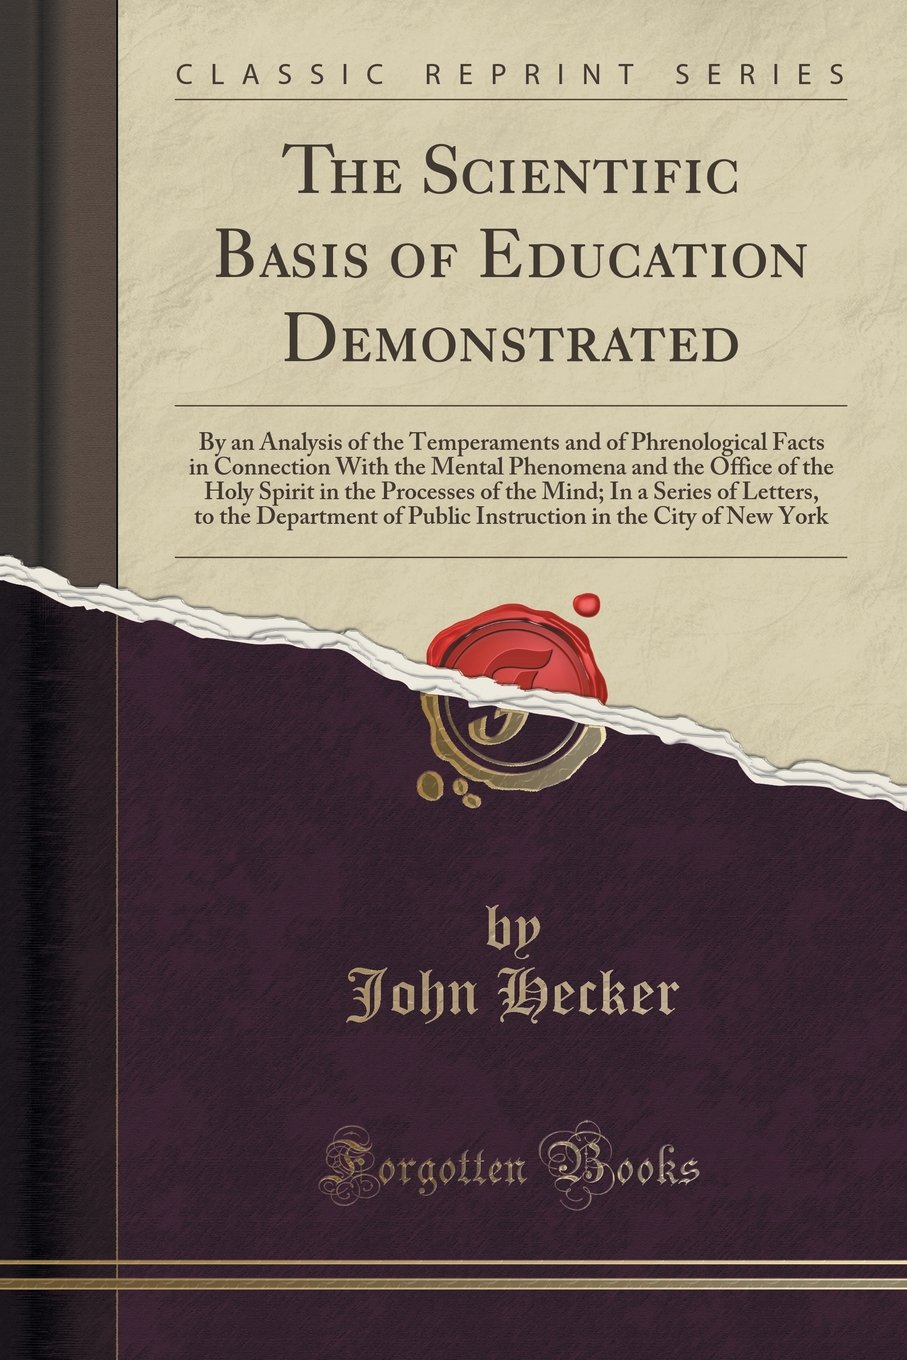 Download The Scientific Basis of Education Demonstrated: By an Analysis of the Temperaments and of Phrenological Facts in Connection With the Mental Phenomena ... In a Series of Letters, to the Department PDF